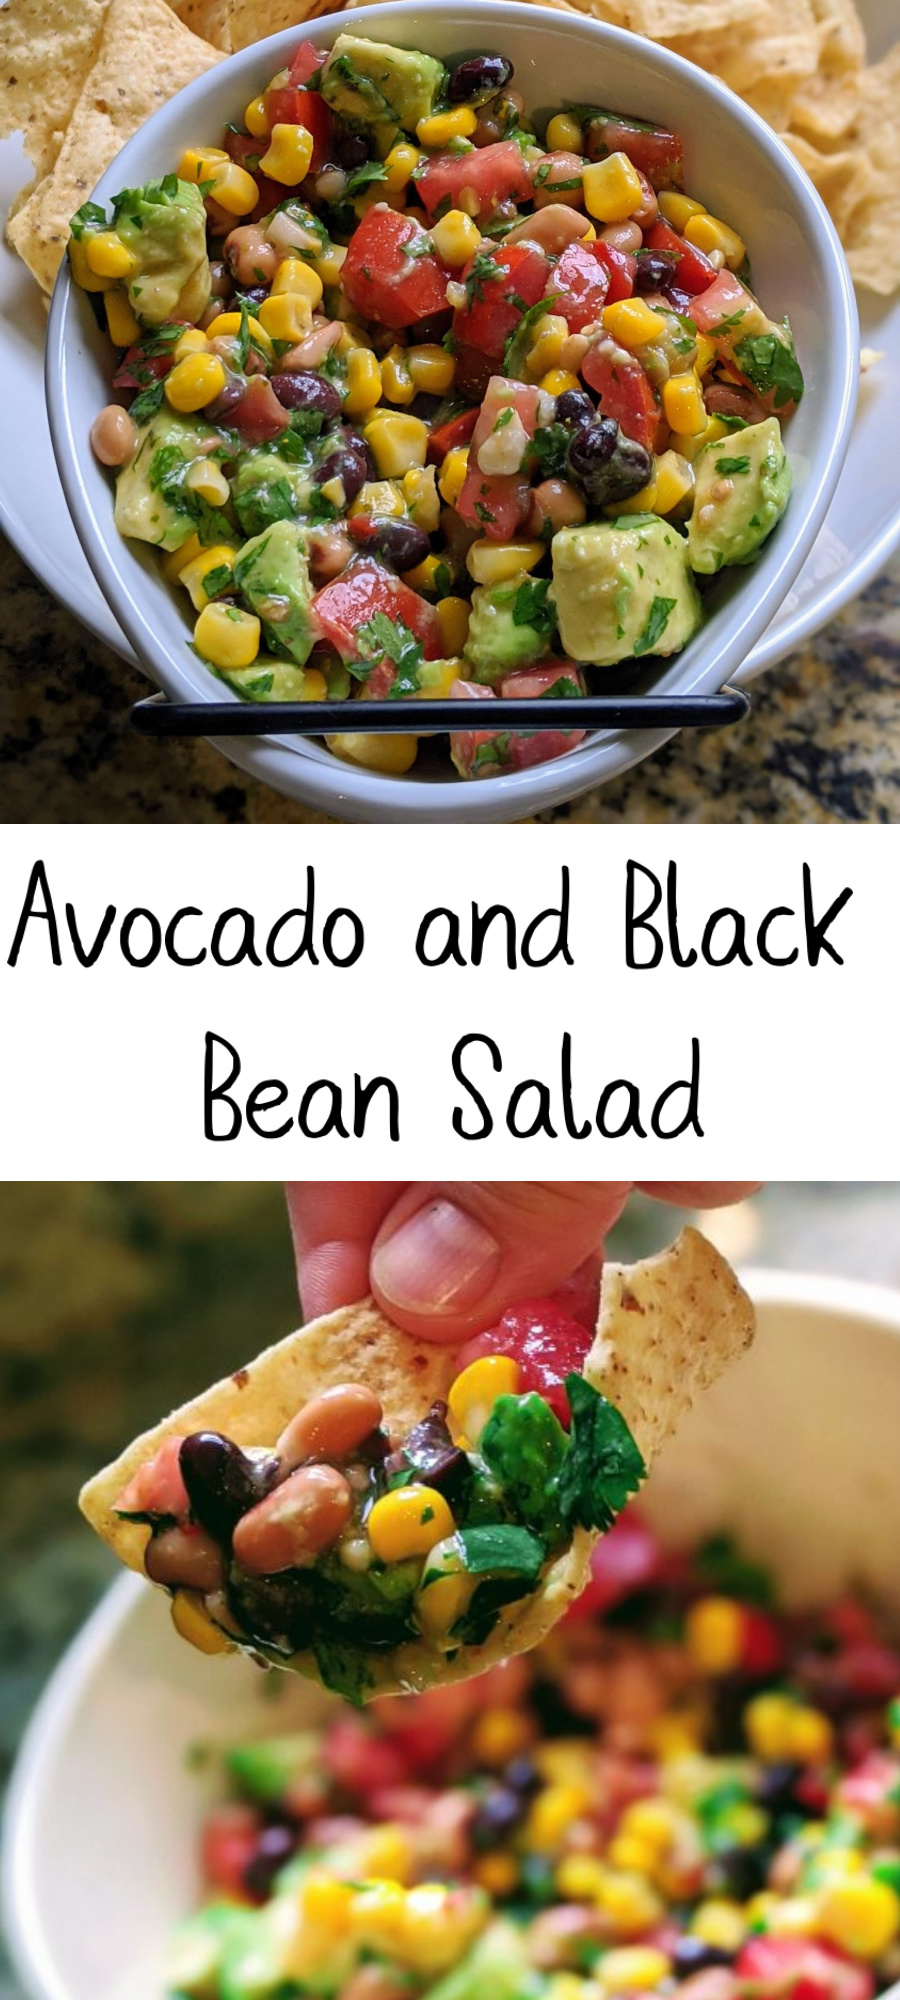 Collage of avocado salad